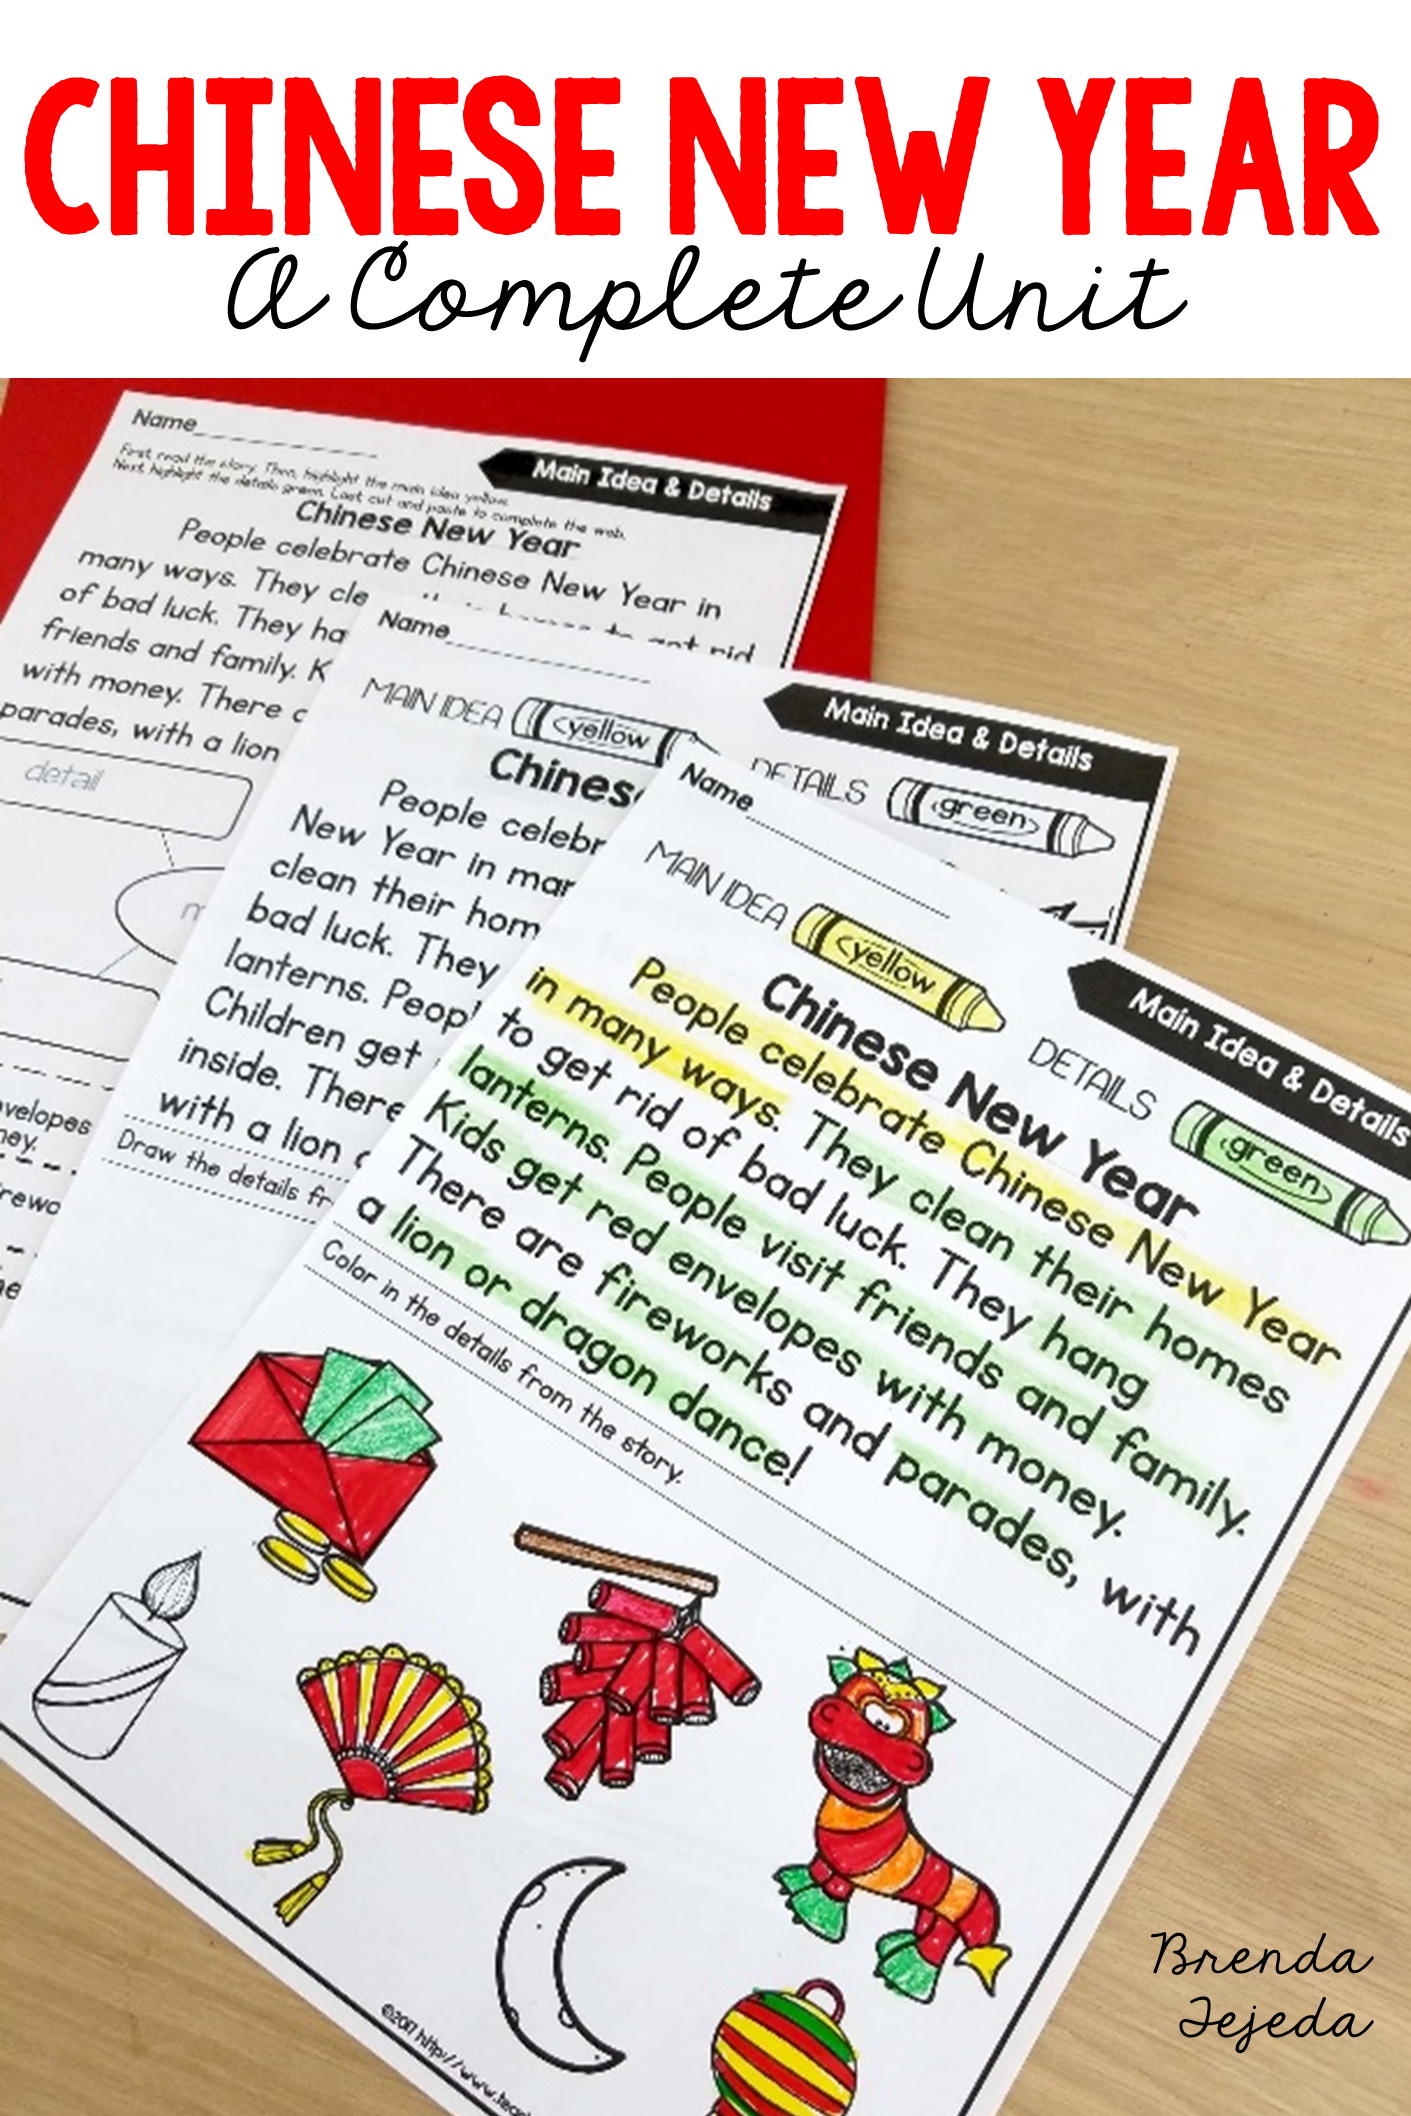 Chinese New Year 2020 Fact Cards Printables Crafts Dragon Writing And More Chinese New Year Activities Chinese New Year Crafts Chinese New Year